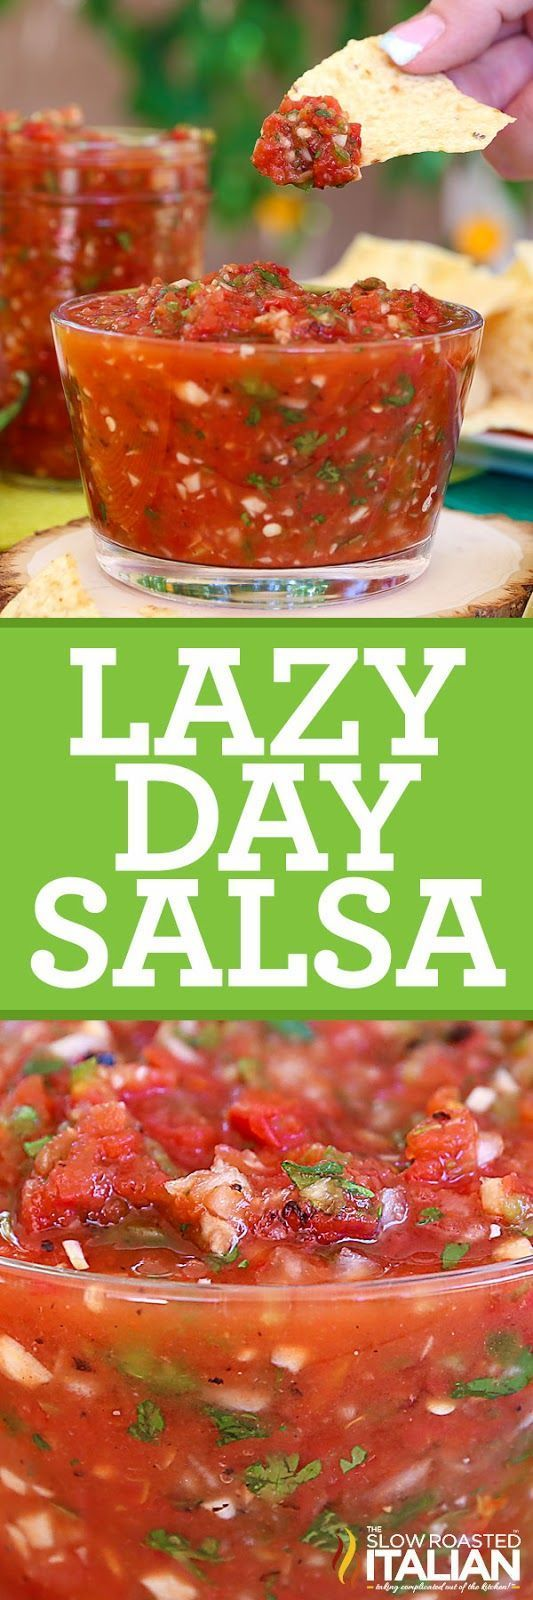 This perfectly scoopable Lazy Day Salsa is a classic tomato salsa that is whipped up in a flash (no chopping required). It is speckled with bits of onion, garlic, and cilantro for an extra freshness. This salsa is so easy you can make it in 10 minutes (it takes me 5) . The best part is, you can add it to left over chicken, burgers, casseroles and viola you have the perfect left over dinner.